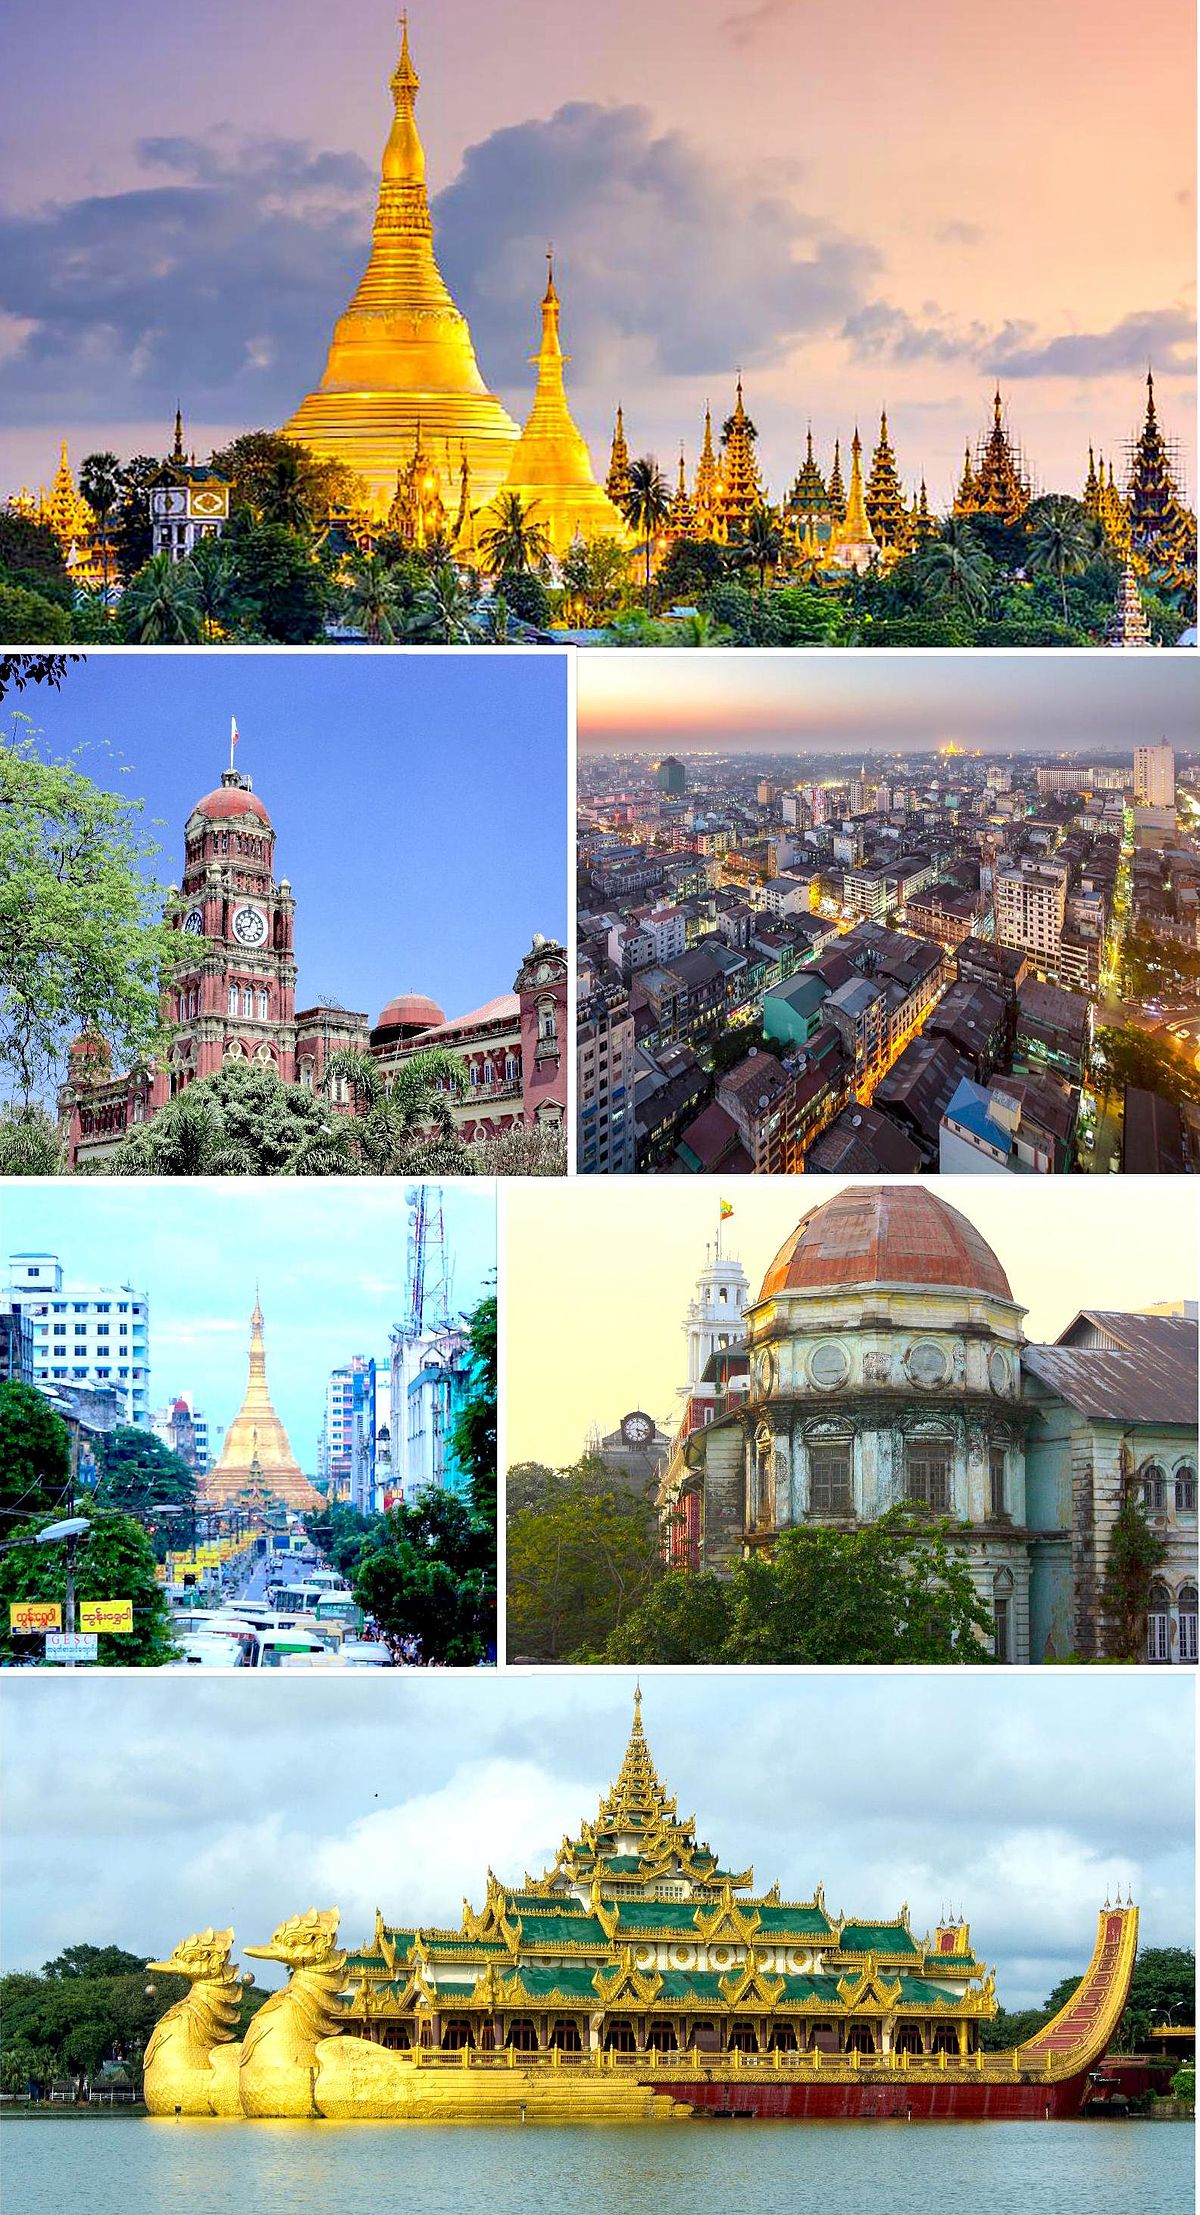 Yangon - the capital of which country Yangon, Myanmar: description, history, population, economy, sights 58